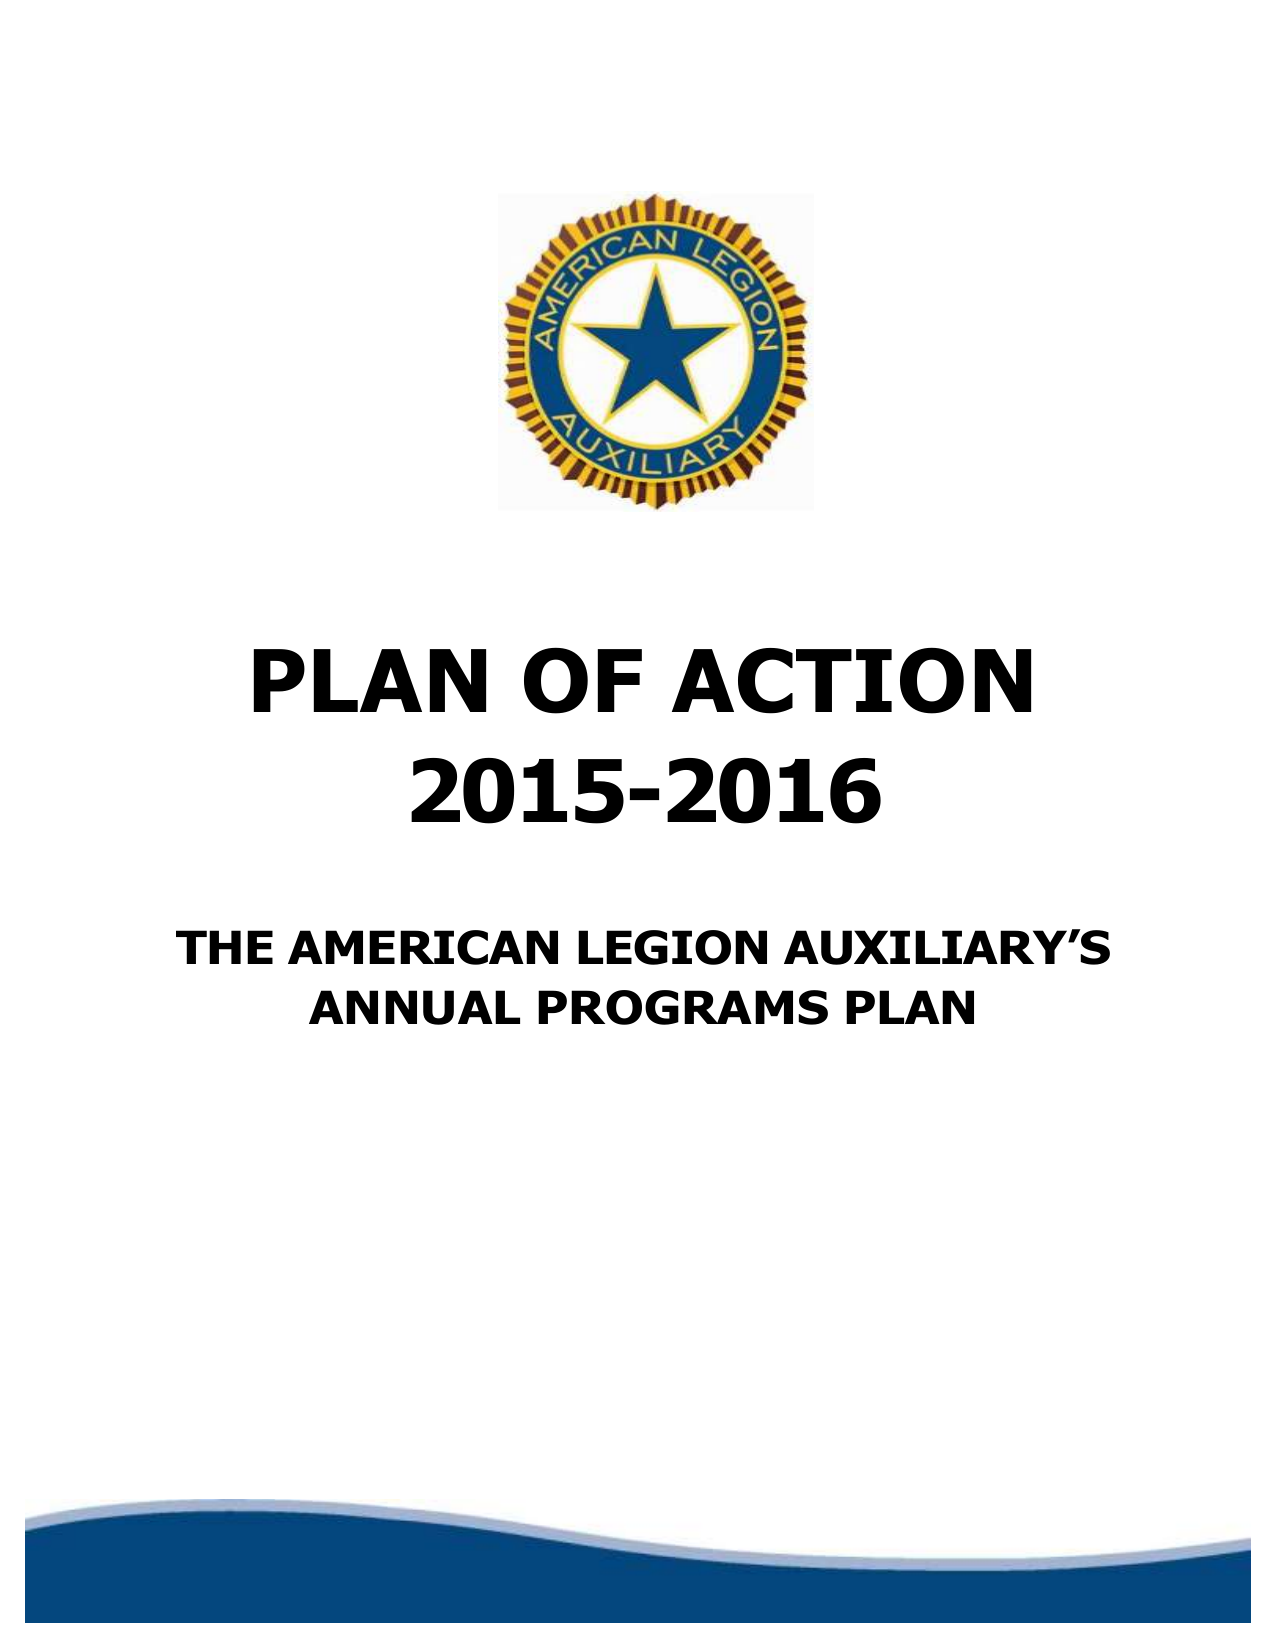 Plan of Action - American Legion Auxiliary